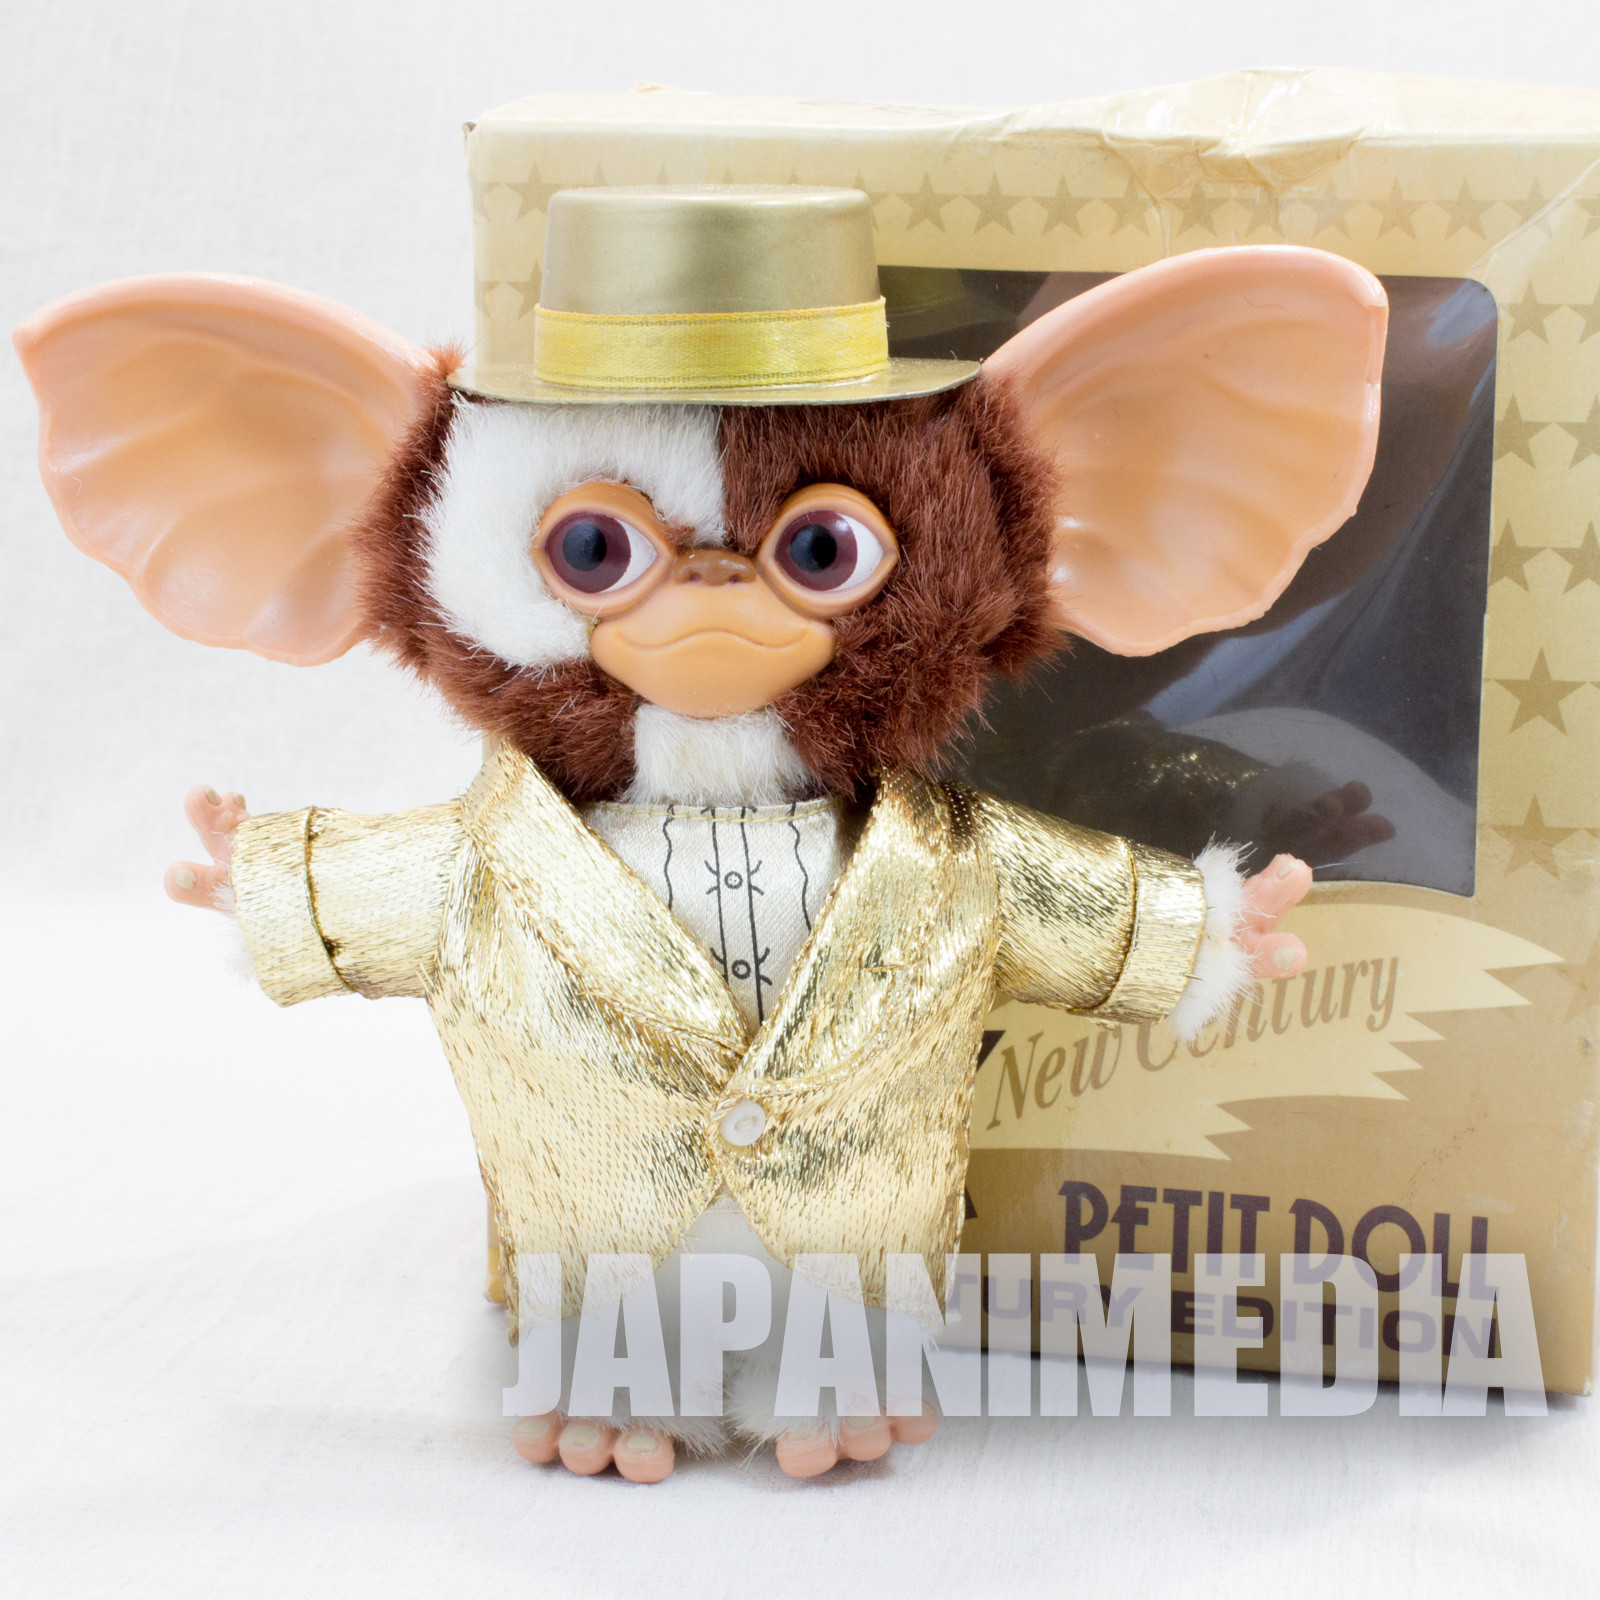 Gremlins GIZMO Bendable Petit Doll Figure New Century Edition JUN Planning JAPAN